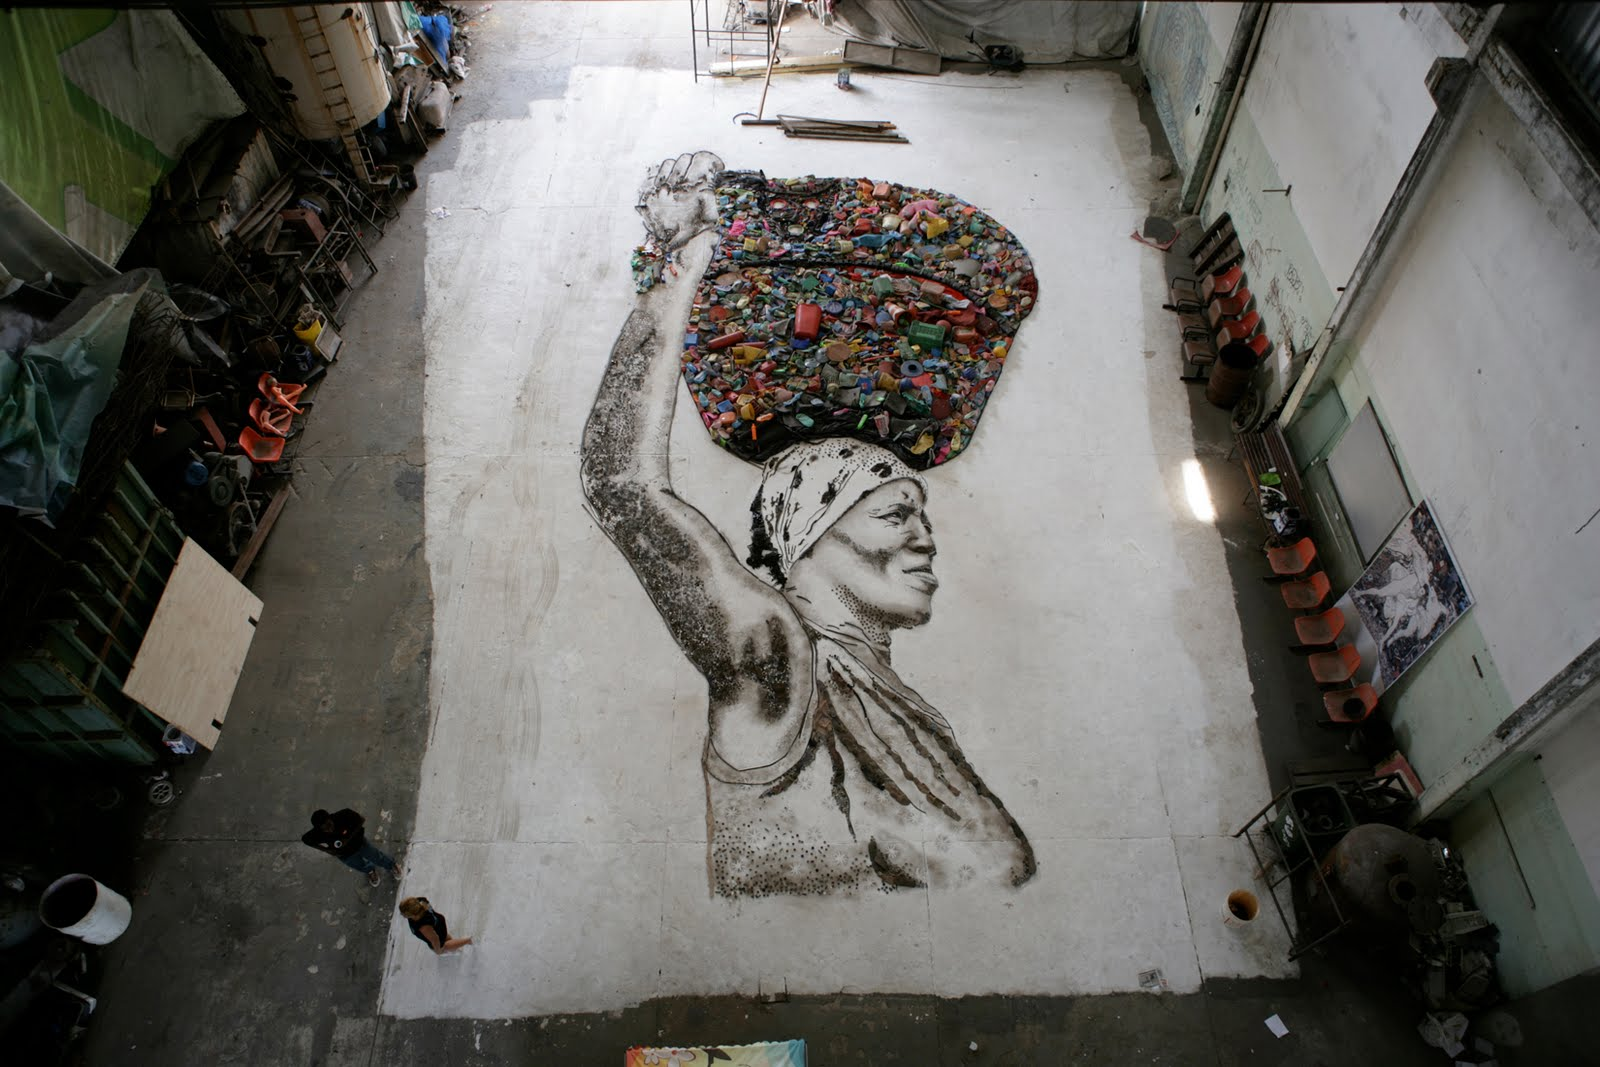 Featured In The 2010 Documentary Waste Land Brazilian Born Artist Vik Muniz Travelled To His Native Home Photograph And Document Numerous Workers At